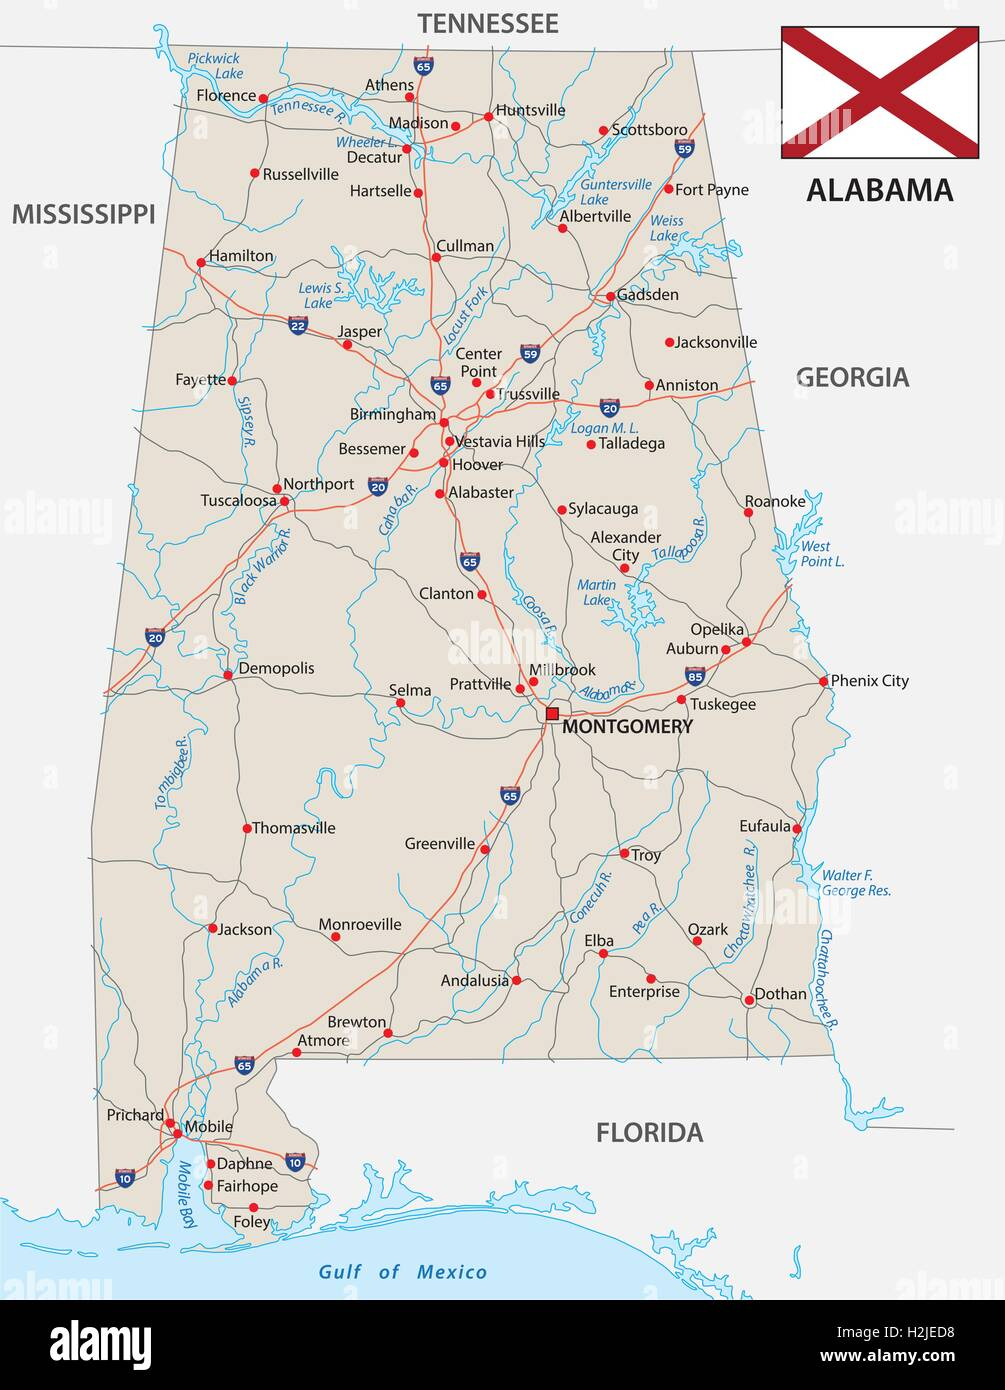 alabama road map with flag Stock Vector Art & Illustration, Vector on auburn alabama zip code map, kentucky road map, alabama time zone map, i 22 corridor map, interstate 65 tennessee map, alabama congressional district map,